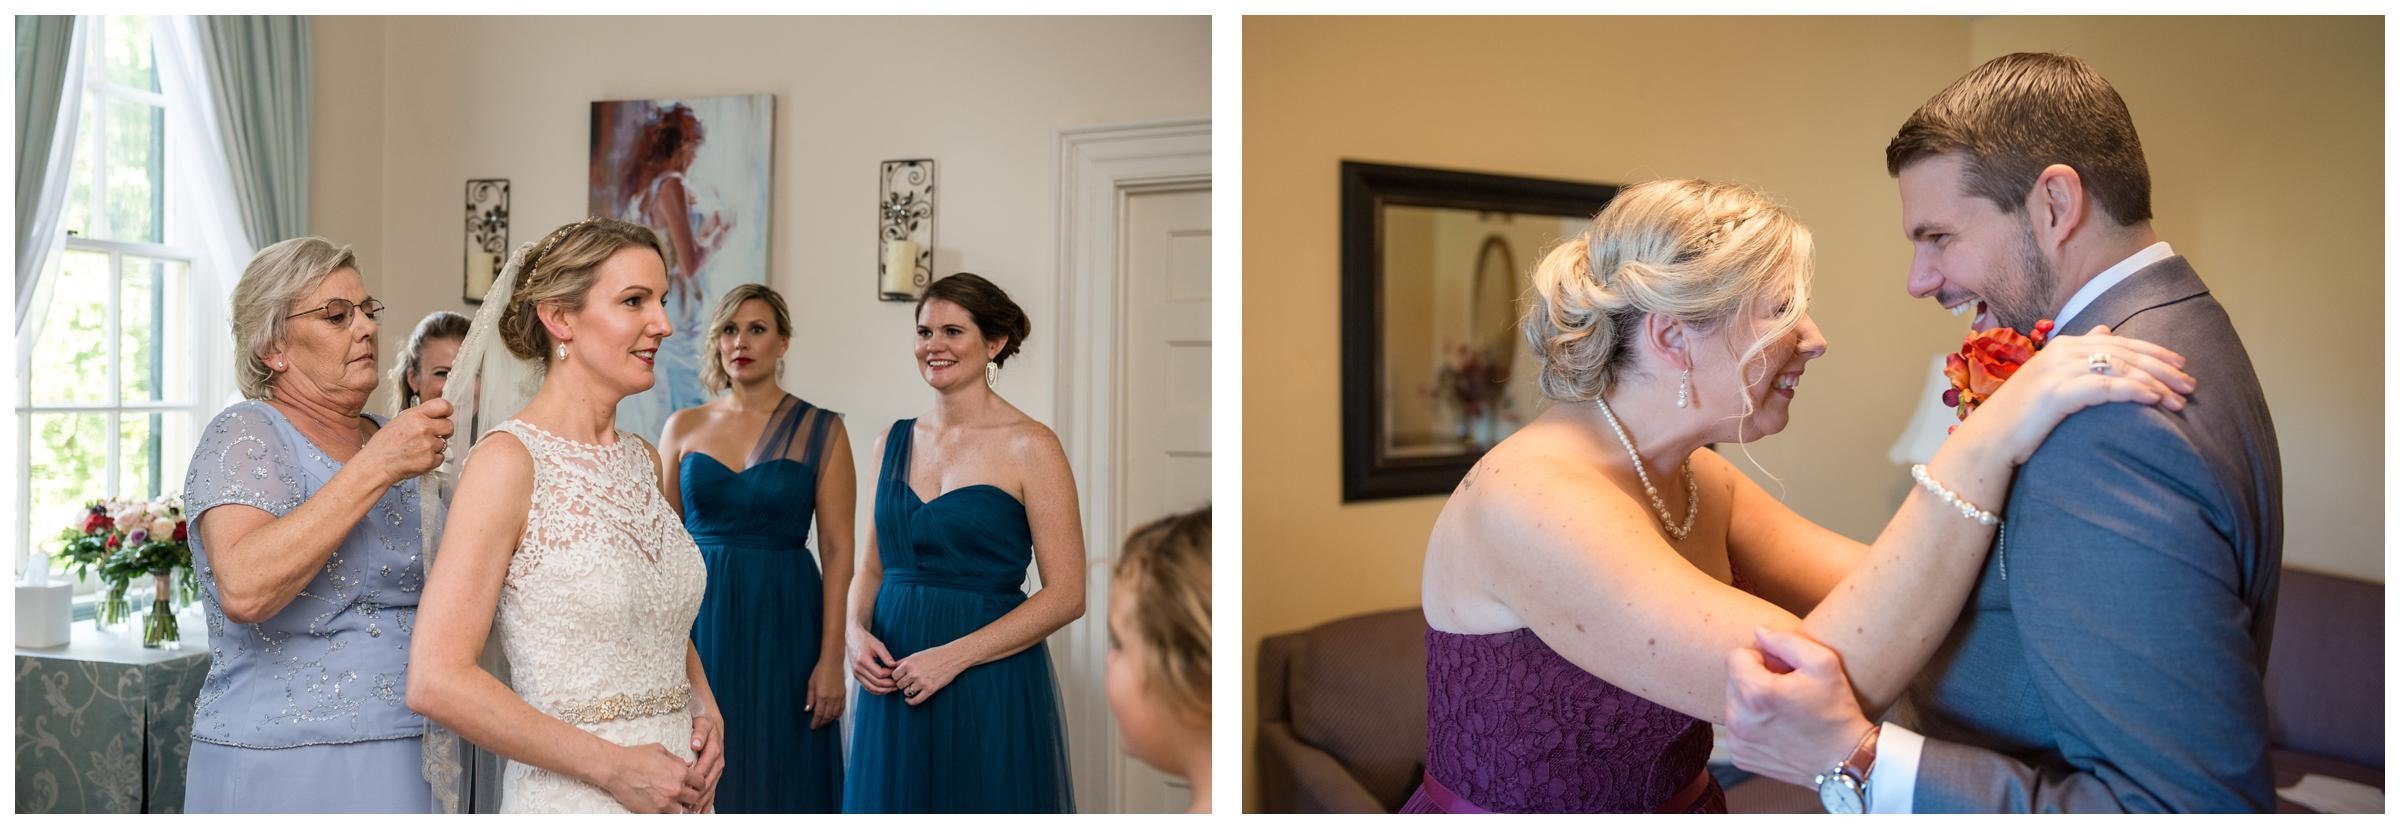 bridal party getting ready before wedding ceremony